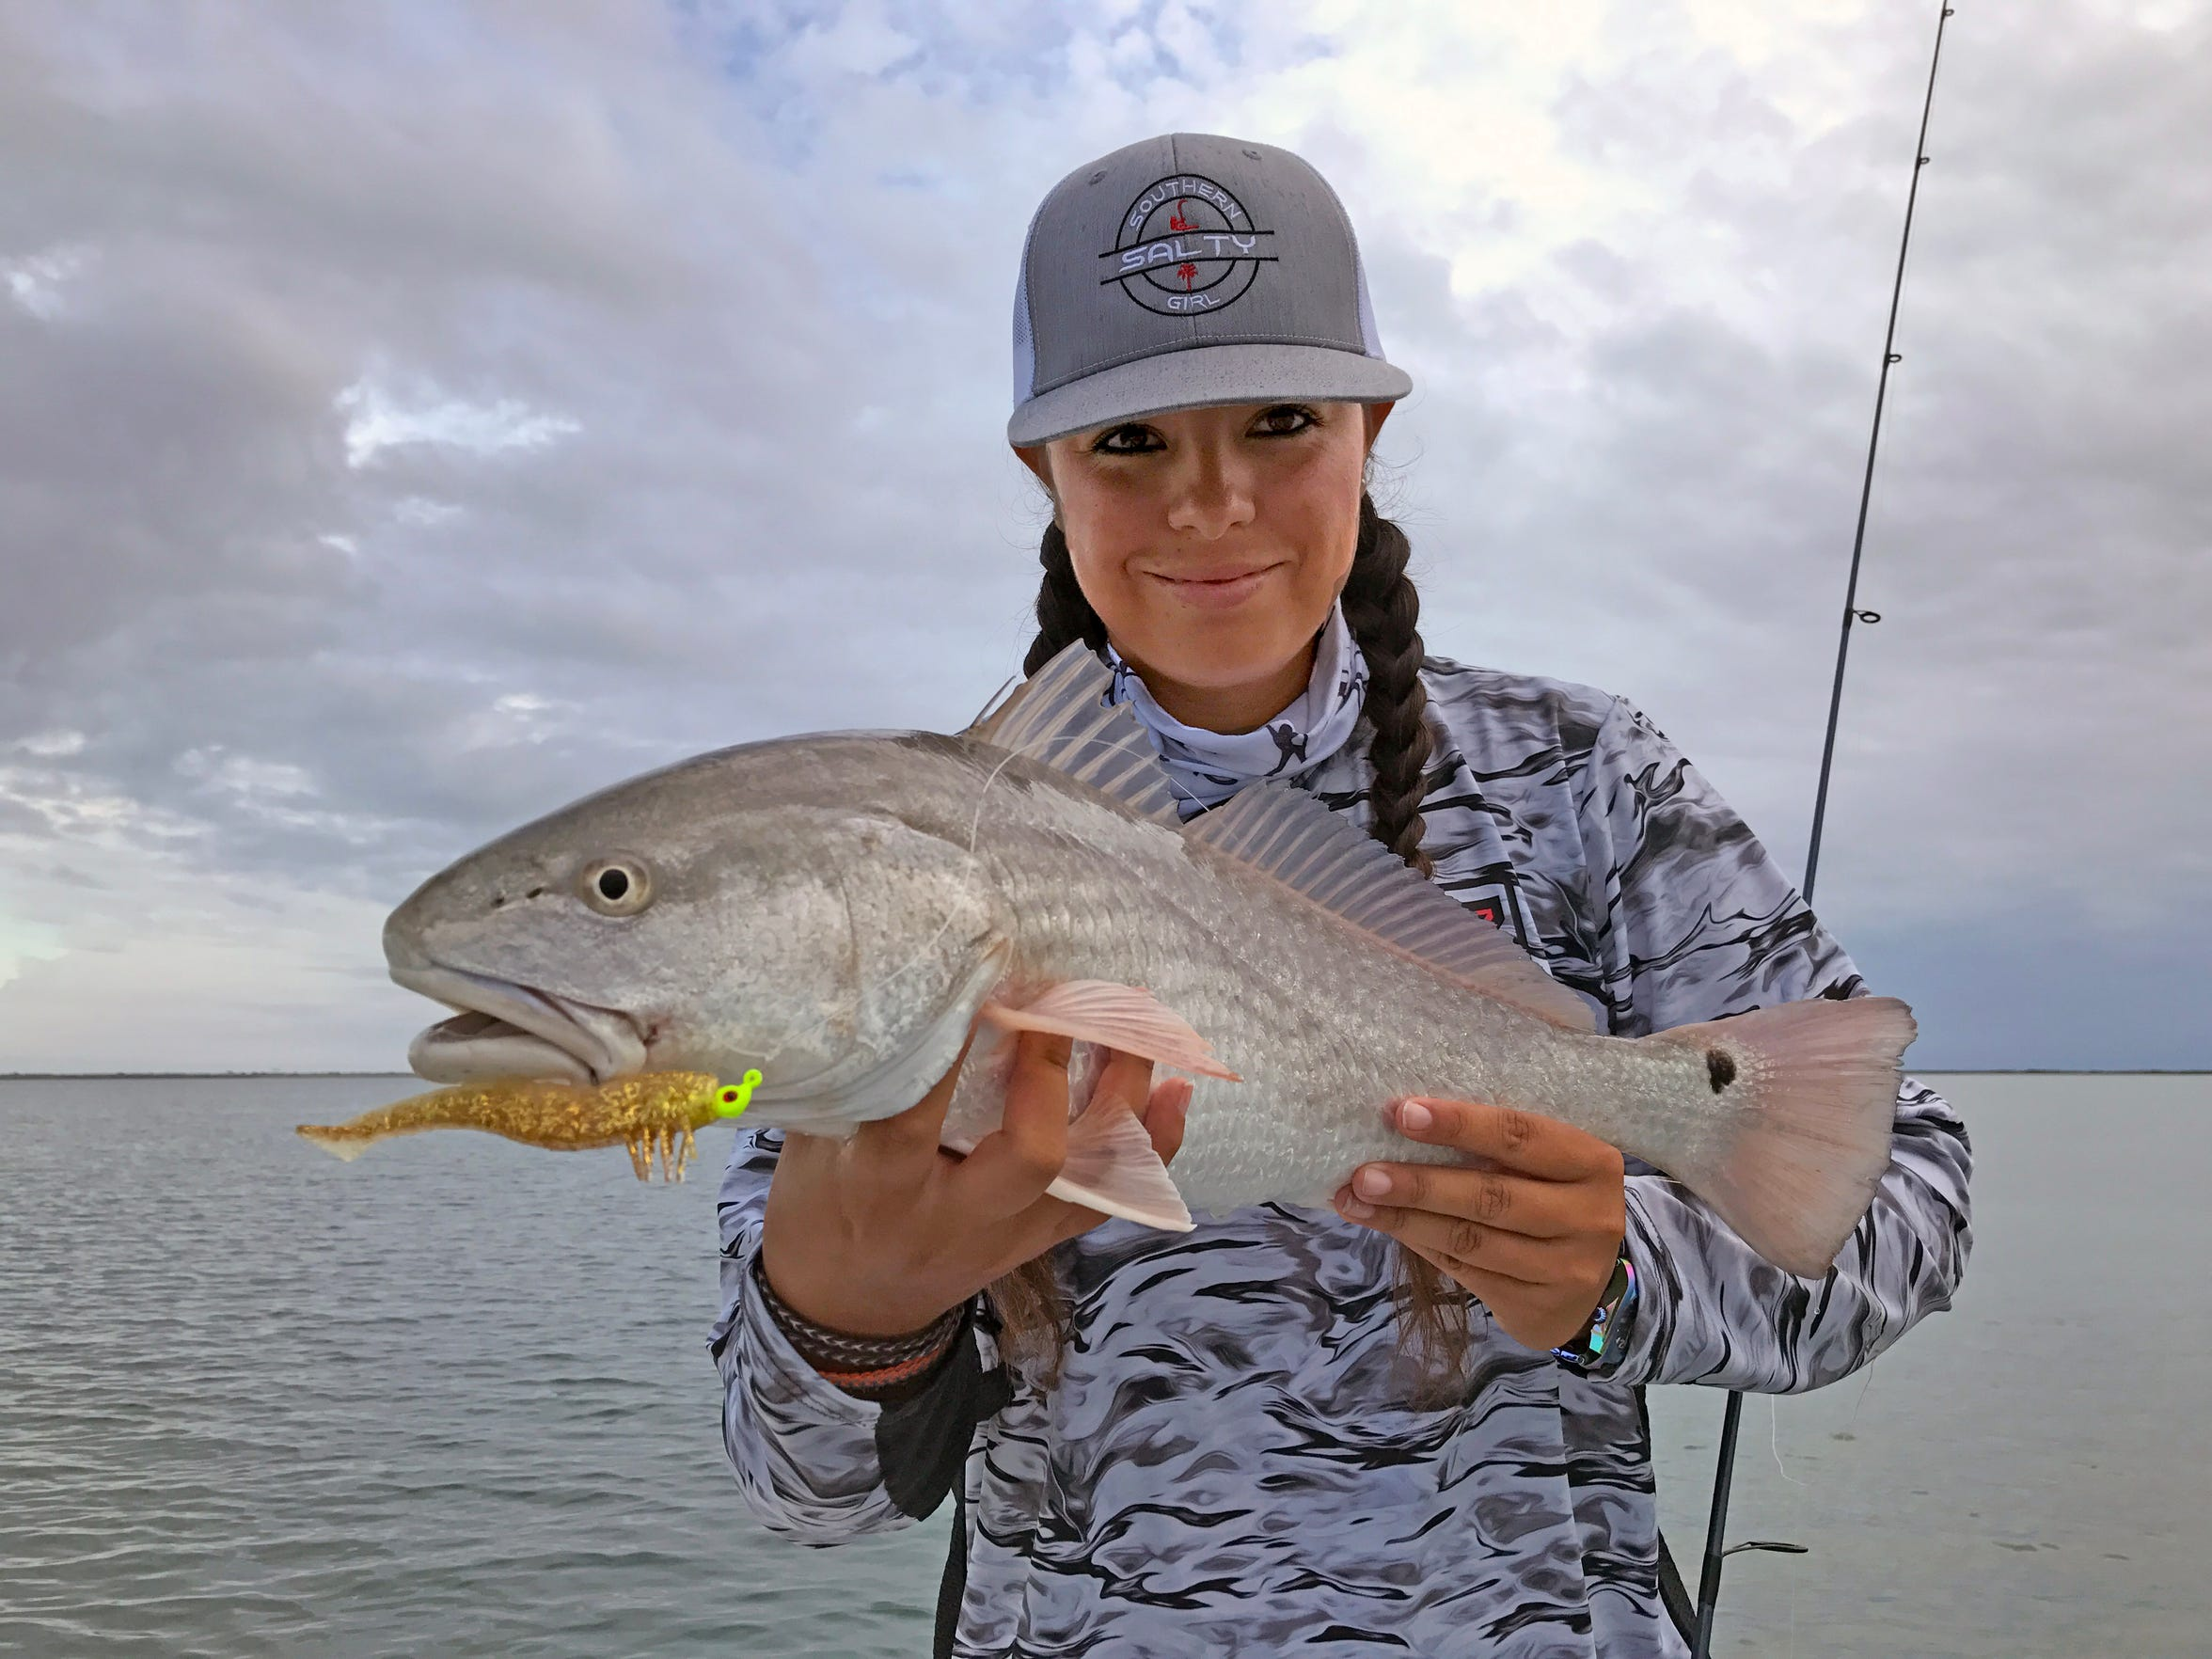 Capt. Ruby Delgado used a DOA Shrimp to catch this redfish, while drifting the Lower Laguna Madre before the start of dove season.